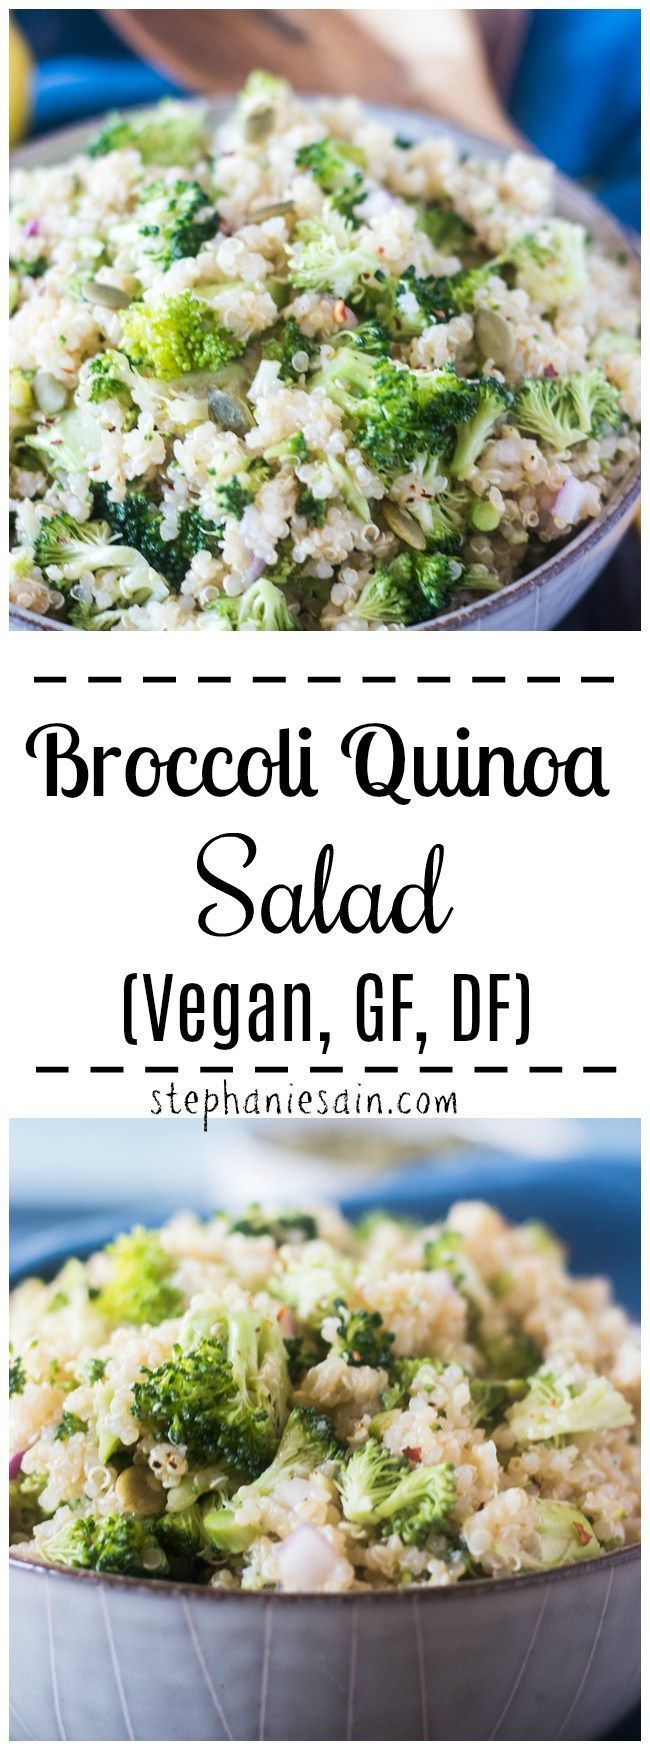 This Broccoli Quinoa Salad is super easy to make and comes together in under 20 …